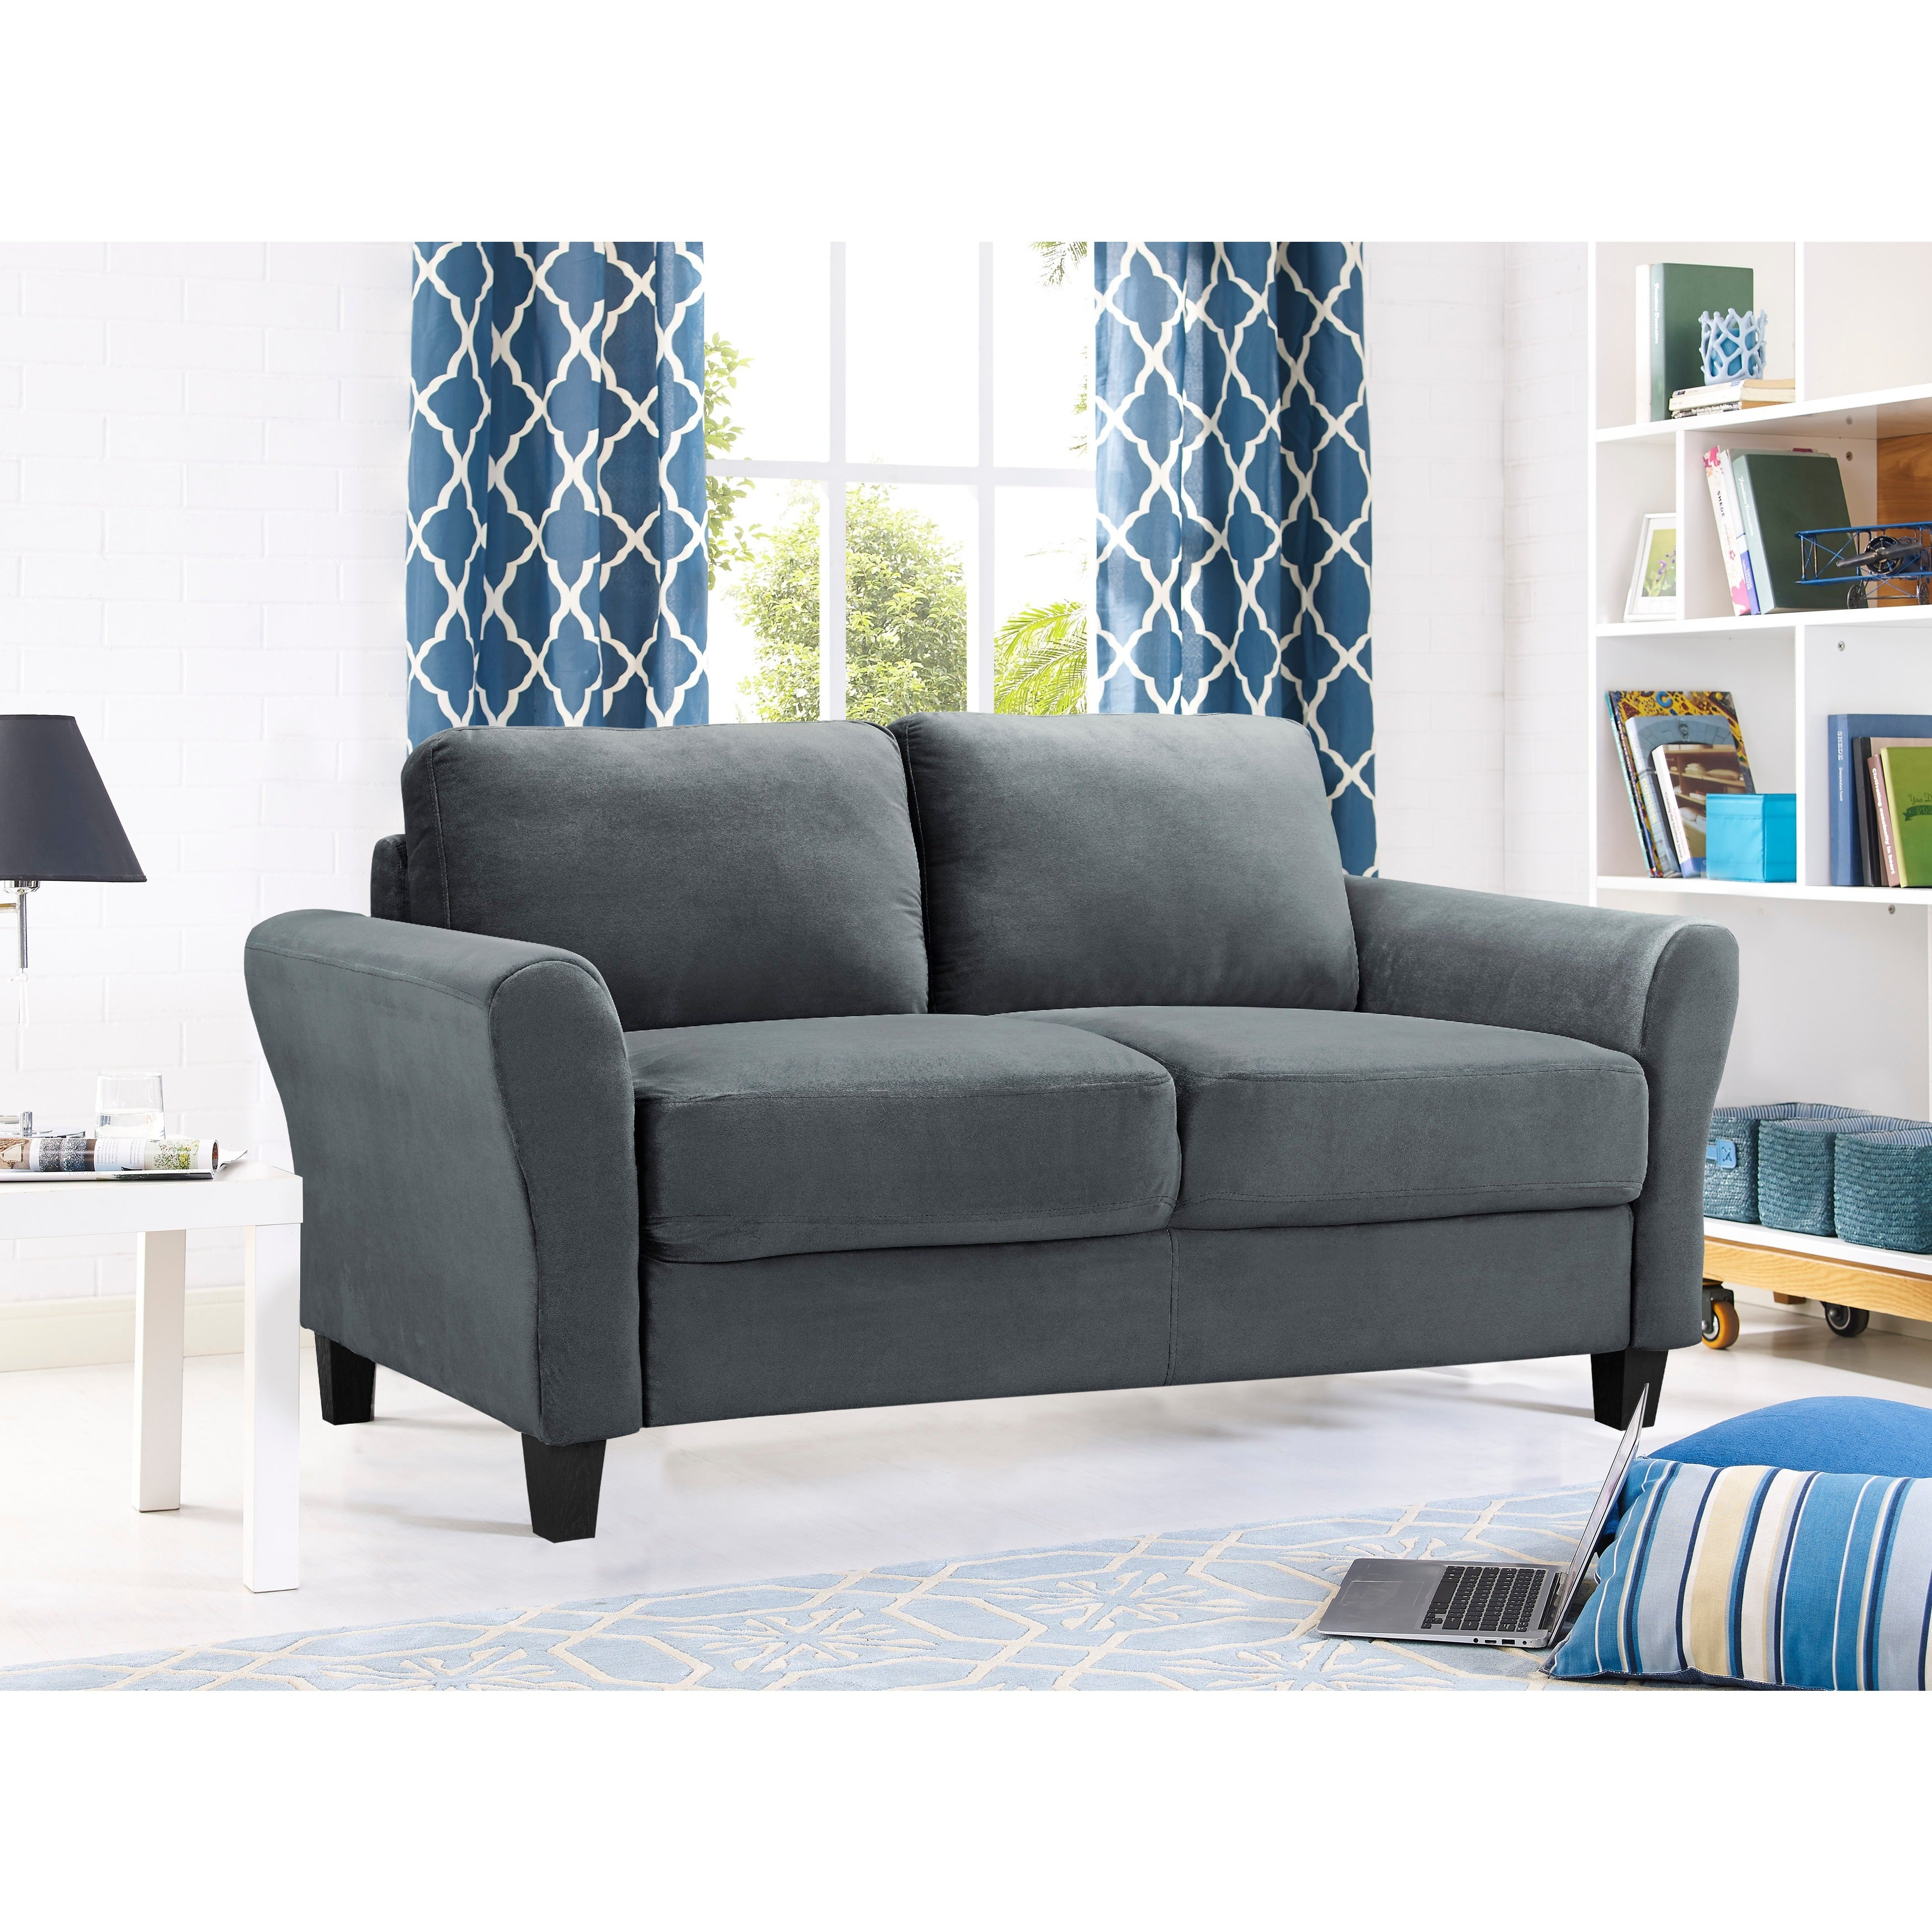 Lifestyle Solutions Waverly Contemporary Loveseat (2 options available)